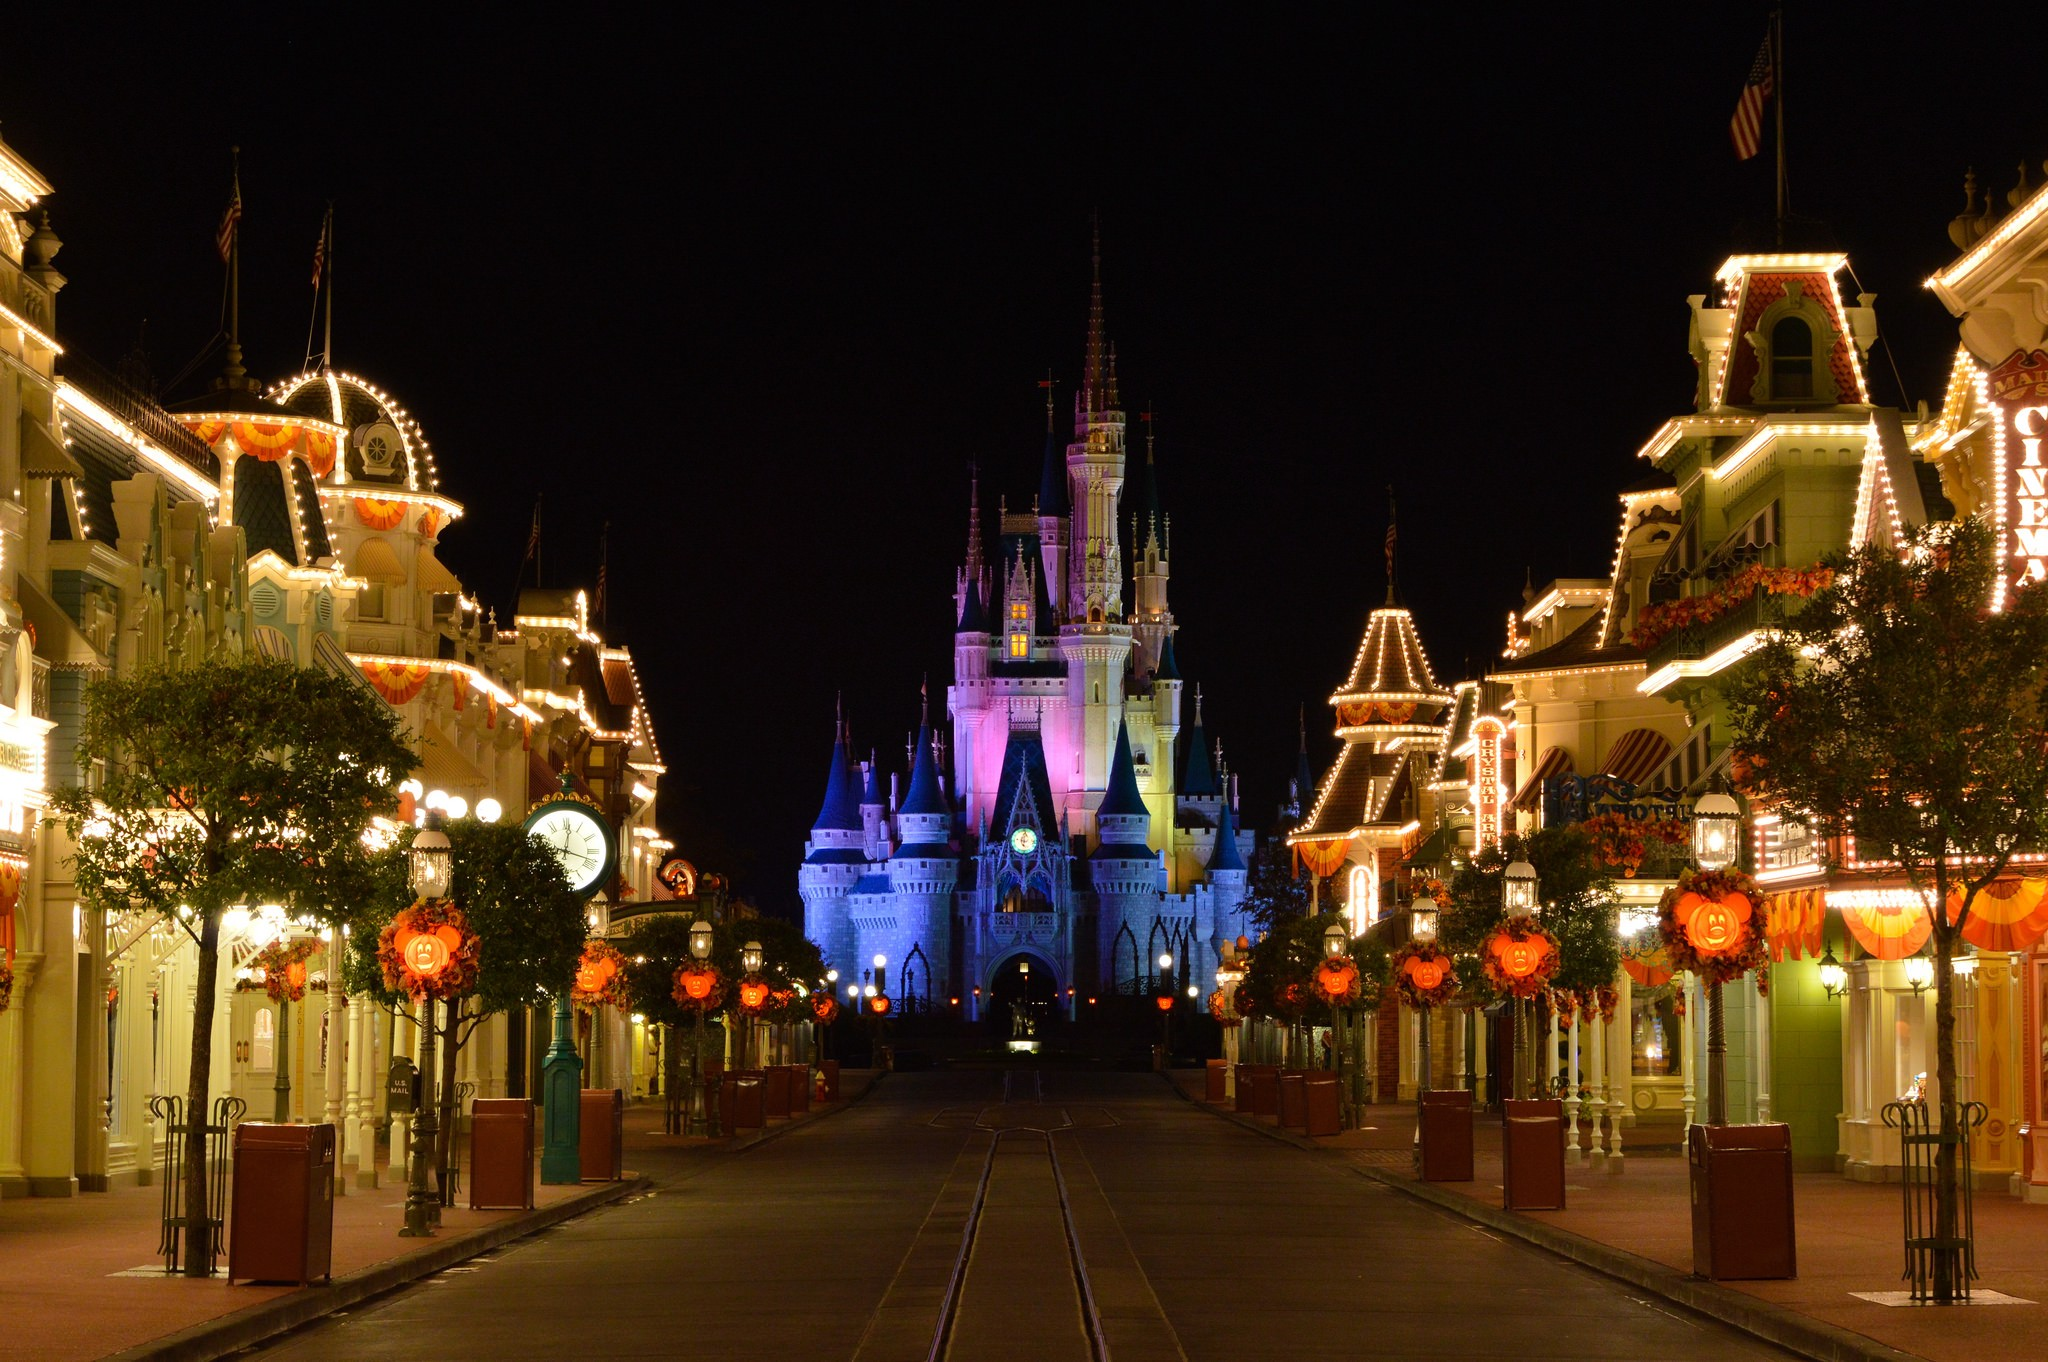 An Ysis Of Lighting In The Disney